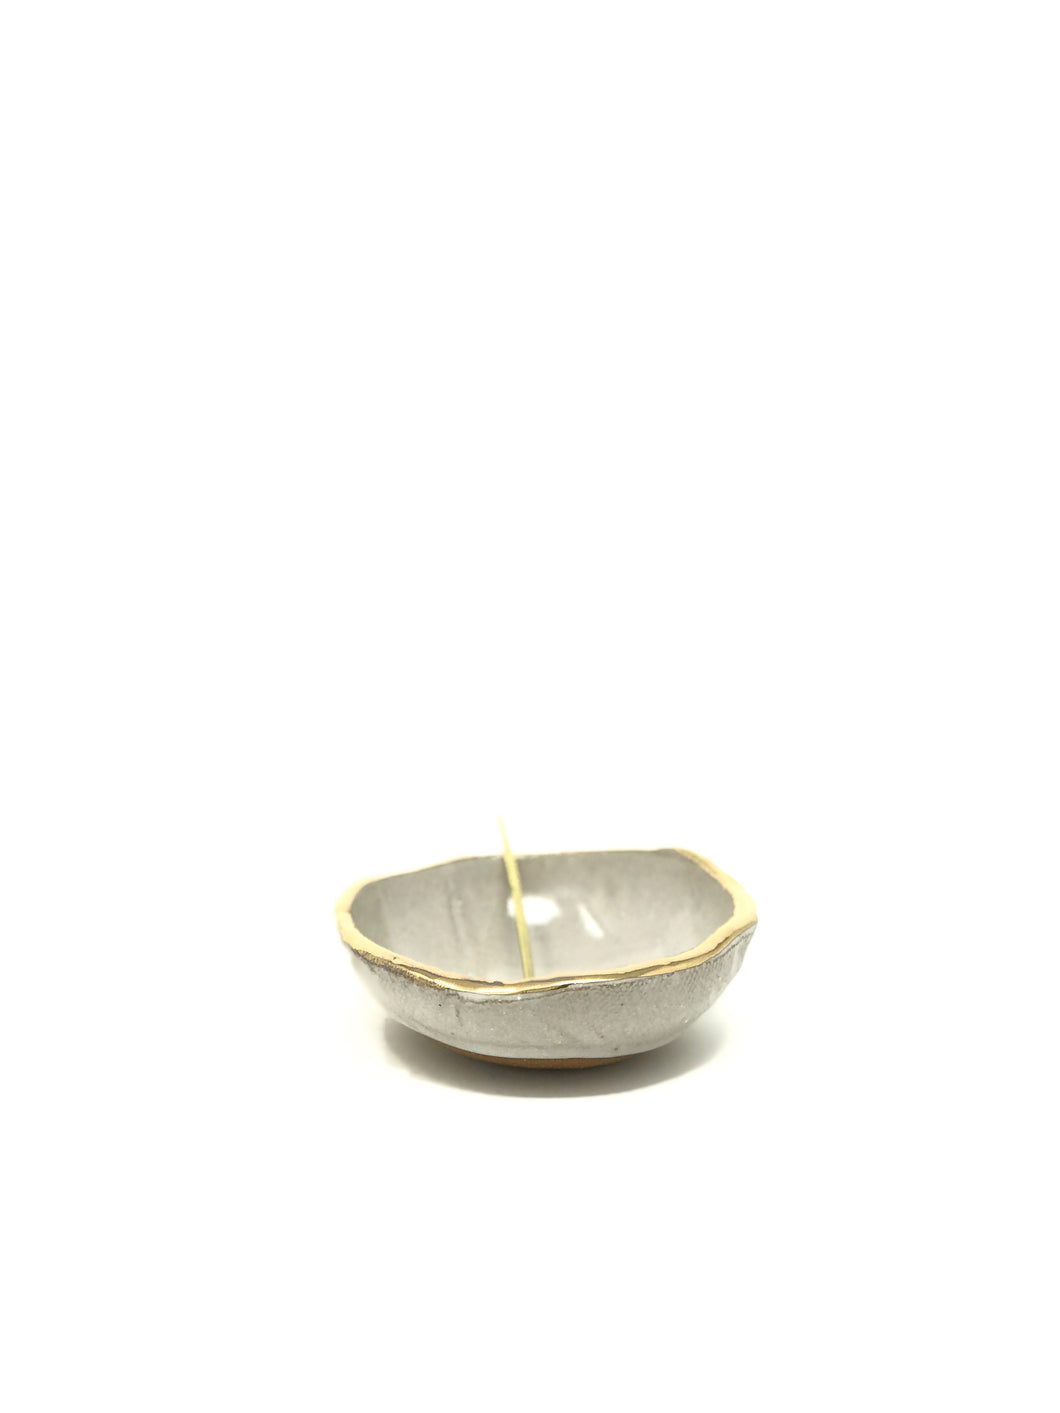 Salt Bowl with Gold Rim and Brass Spoon